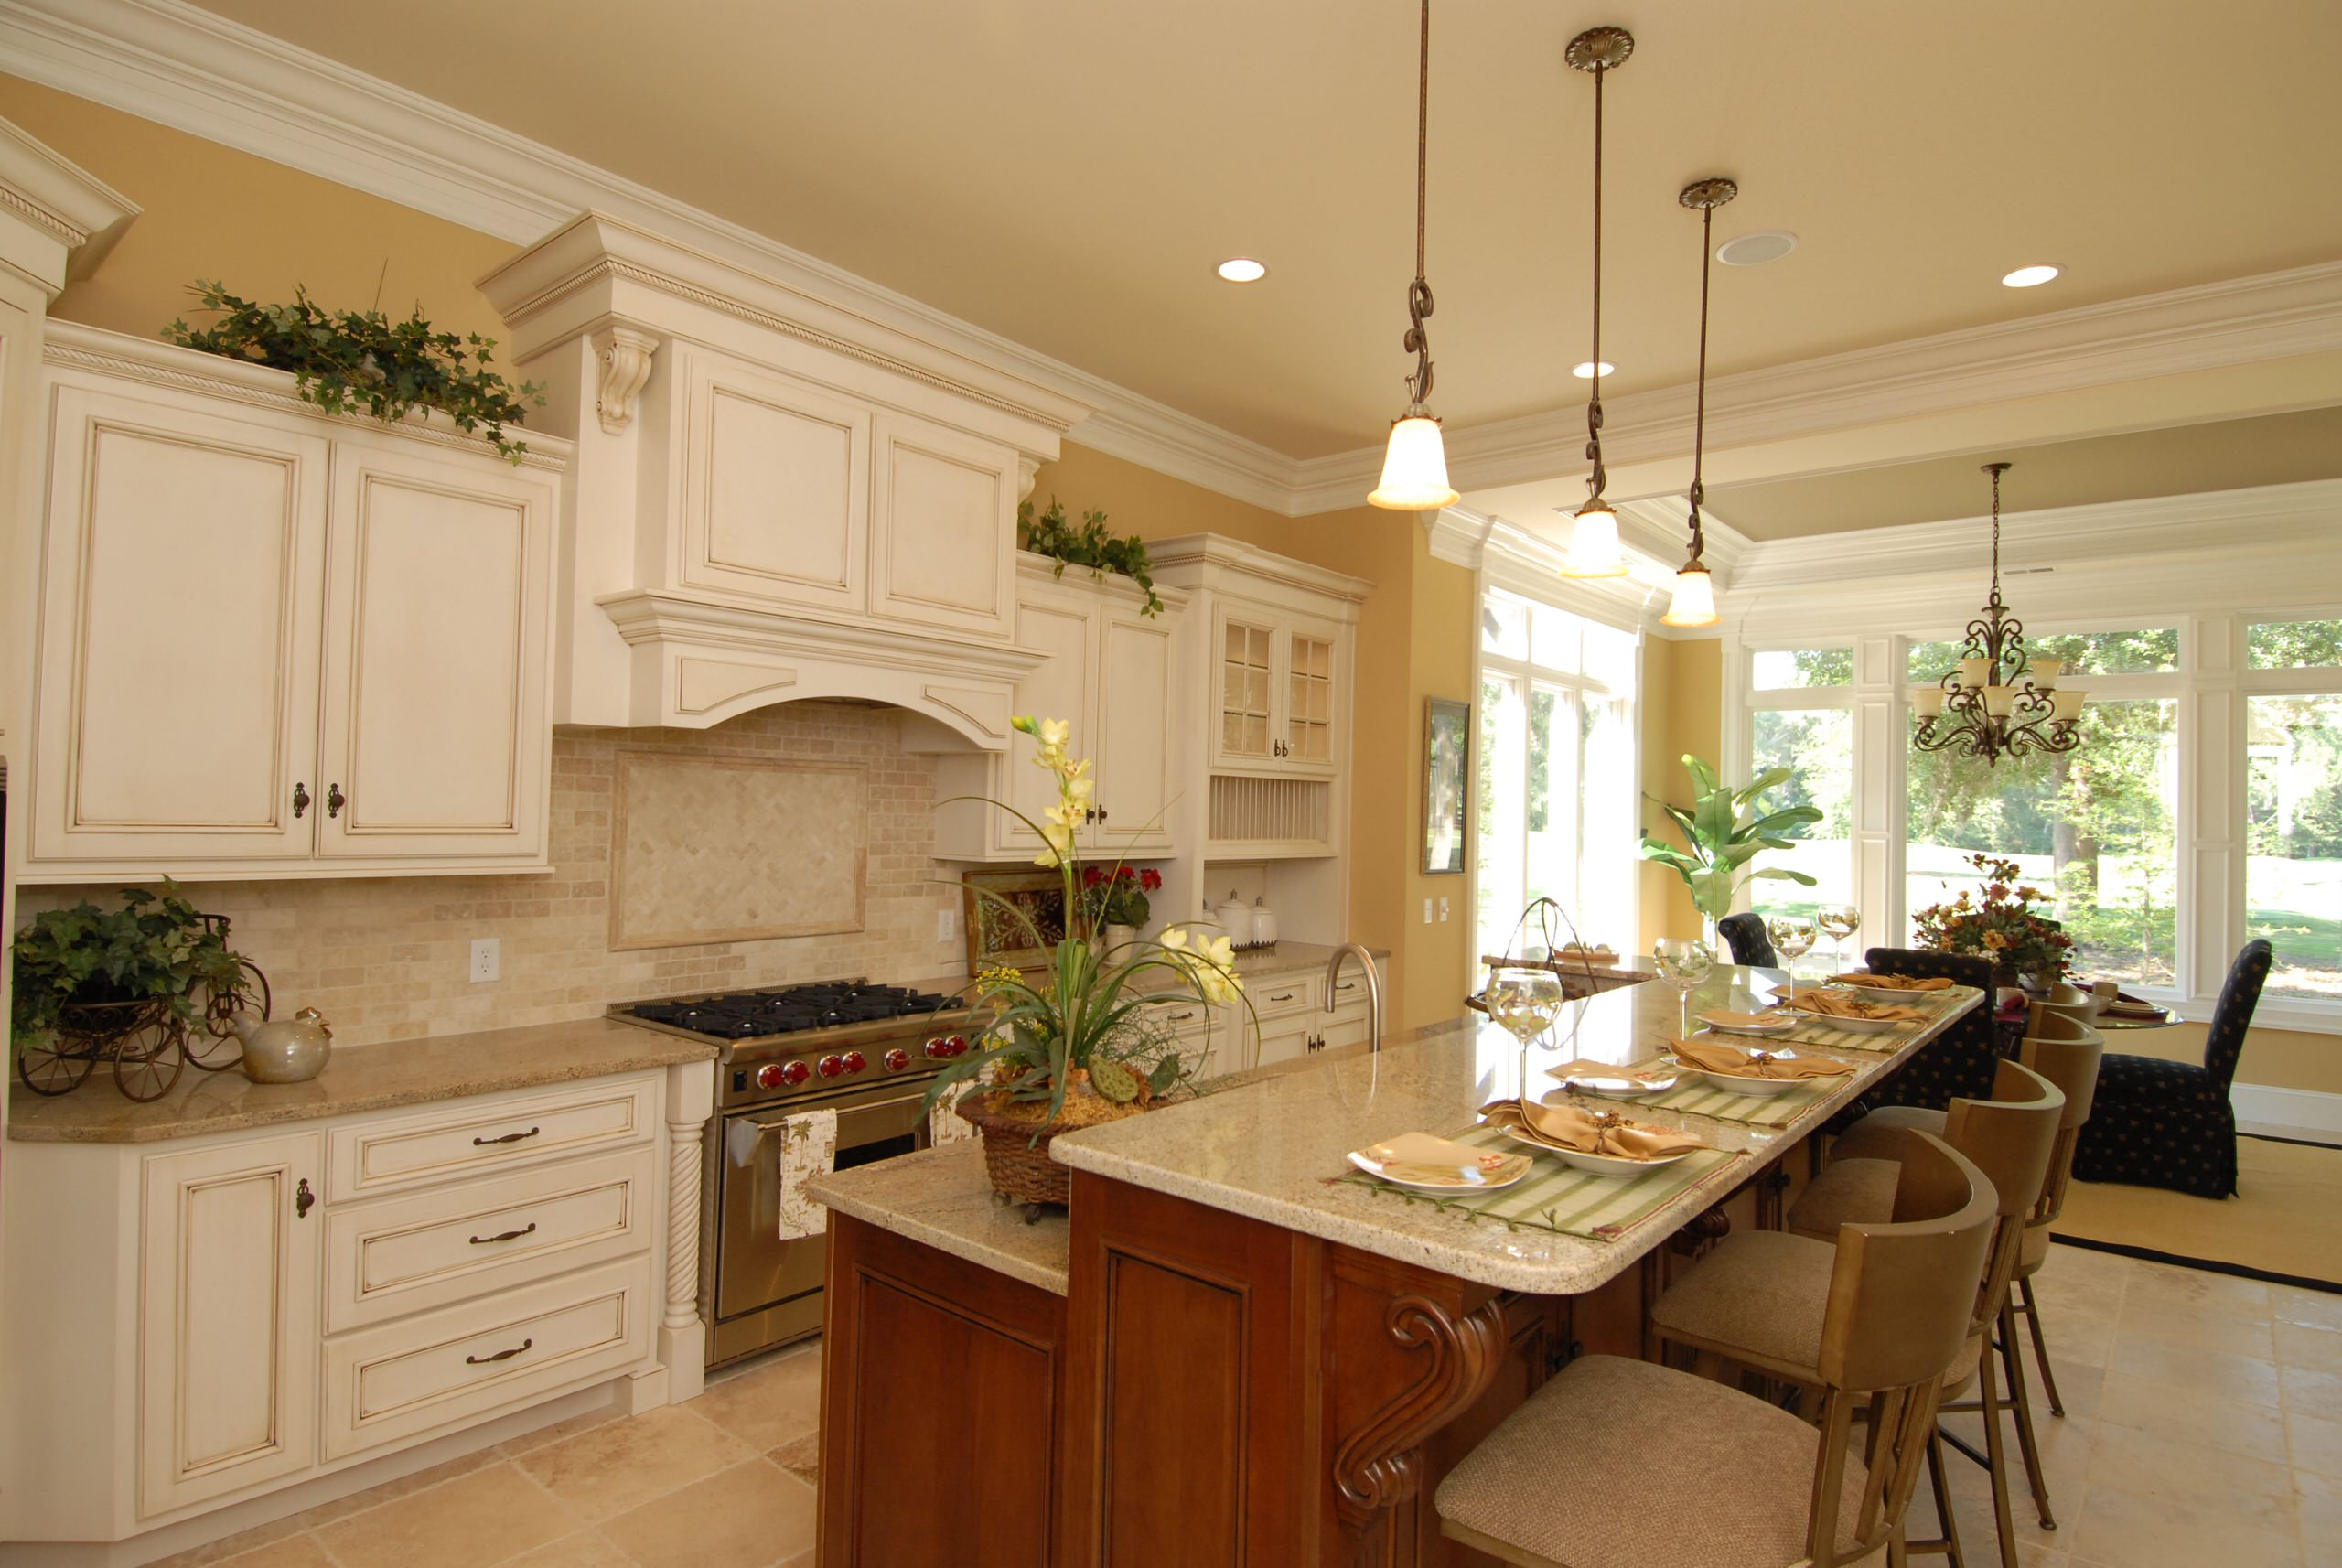 Paint with Glaze Cabinets